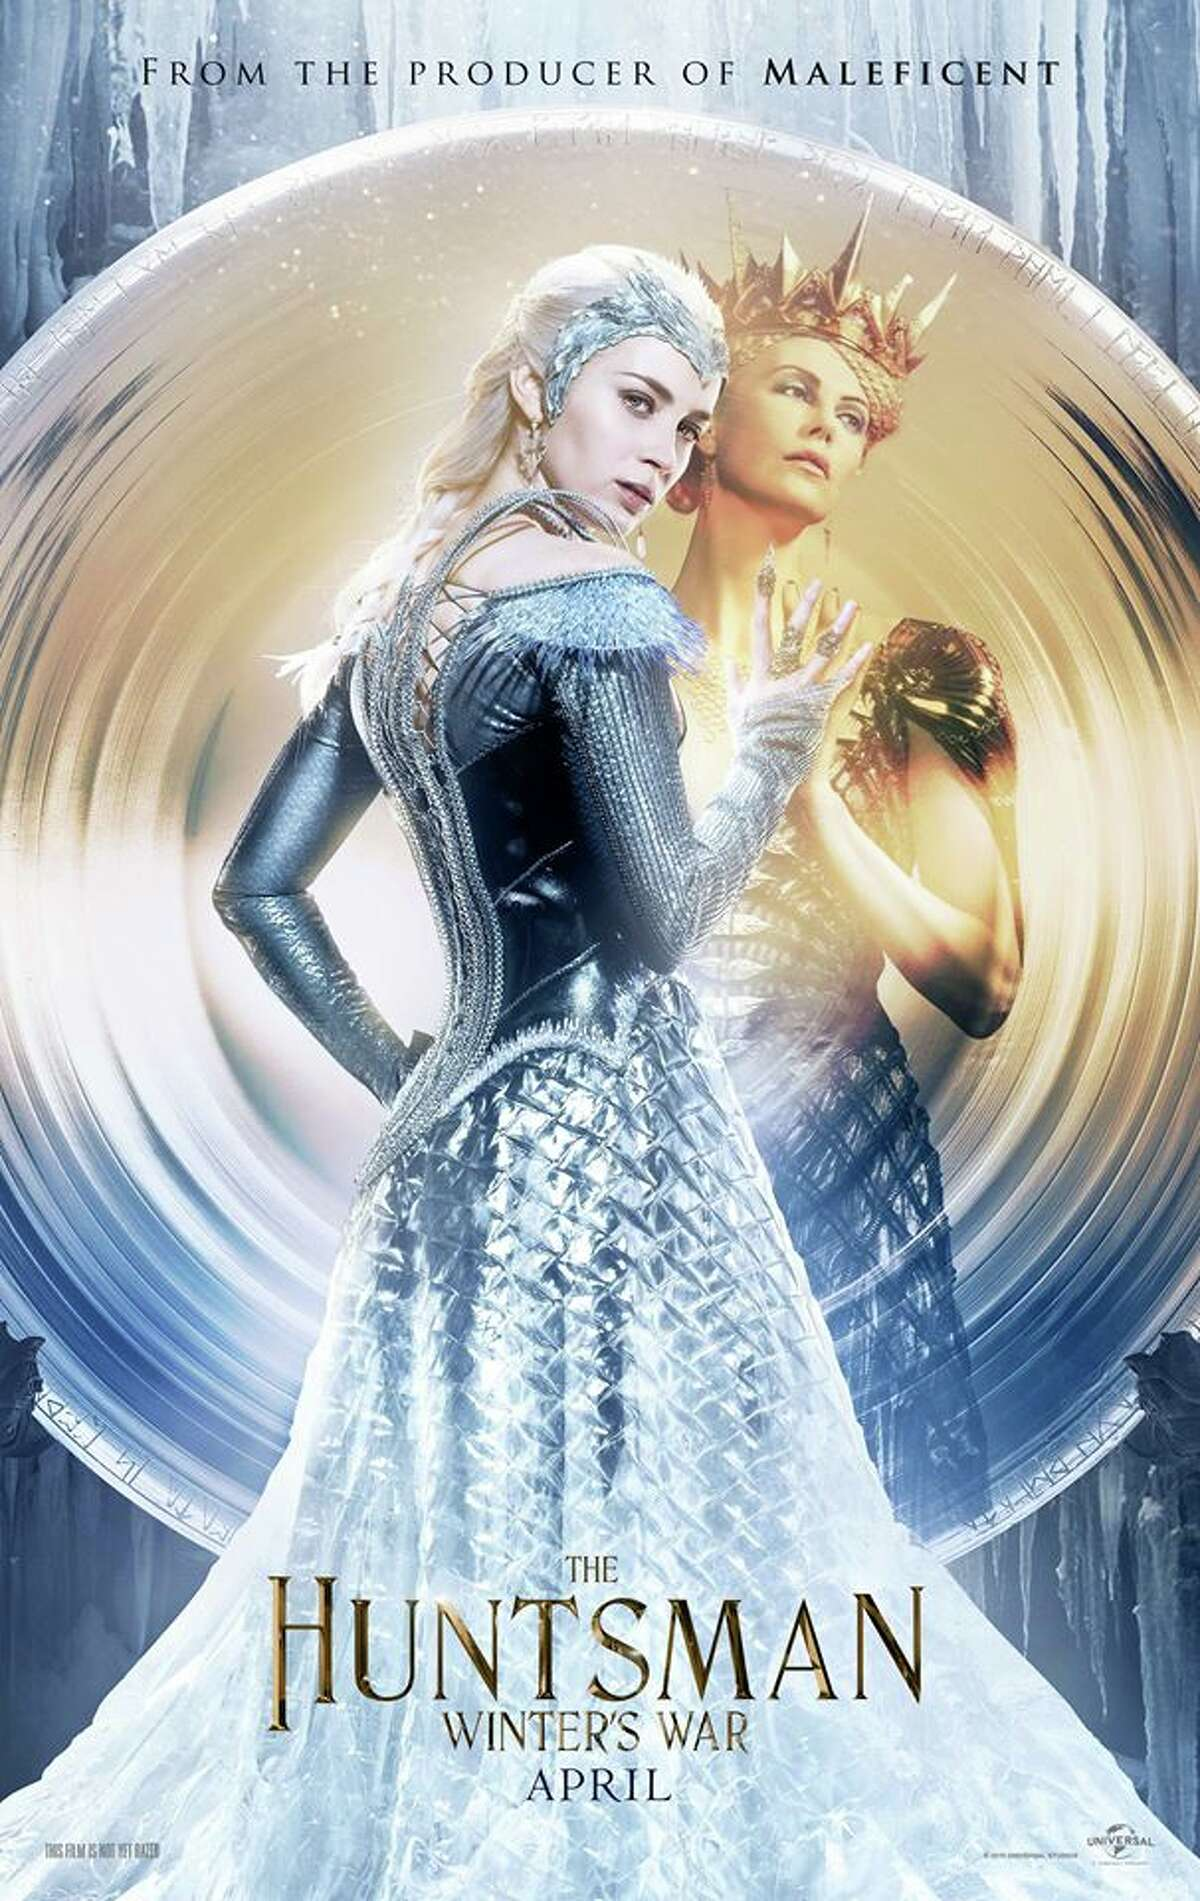 The Huntsman: Winter's War opening April 22. As two evil sisters prepare to conquer the land; two renegades - Eric the Huntsman - who previously aided Snow White in defeating Ravenna, and his forbidden lover, Sara set out to stop them. Starring Chris Hemsworth, Jessica Chastain, Charlize Theron, Emily Blunt.